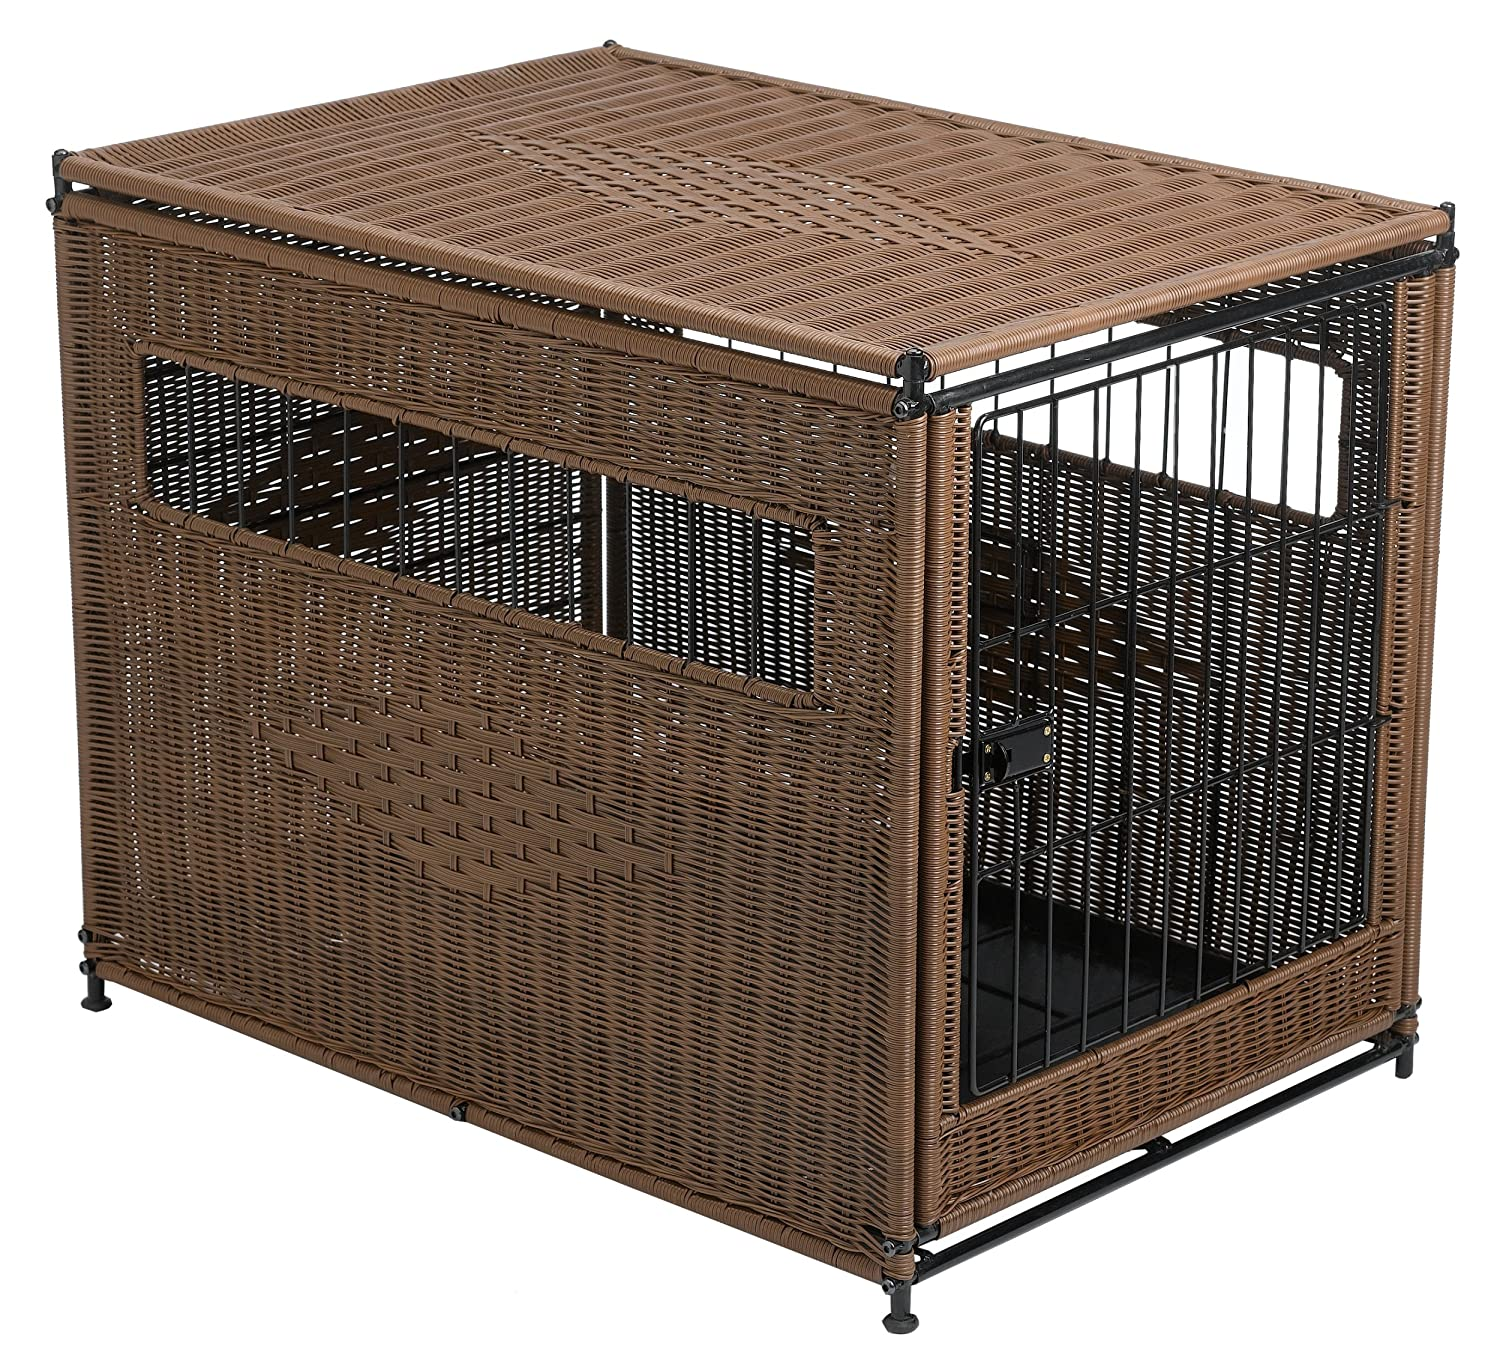 Amazon.com : Mr. Herzheru0027s Medium Pet Residence, Dark : Pet Kennels : Pet  Supplies